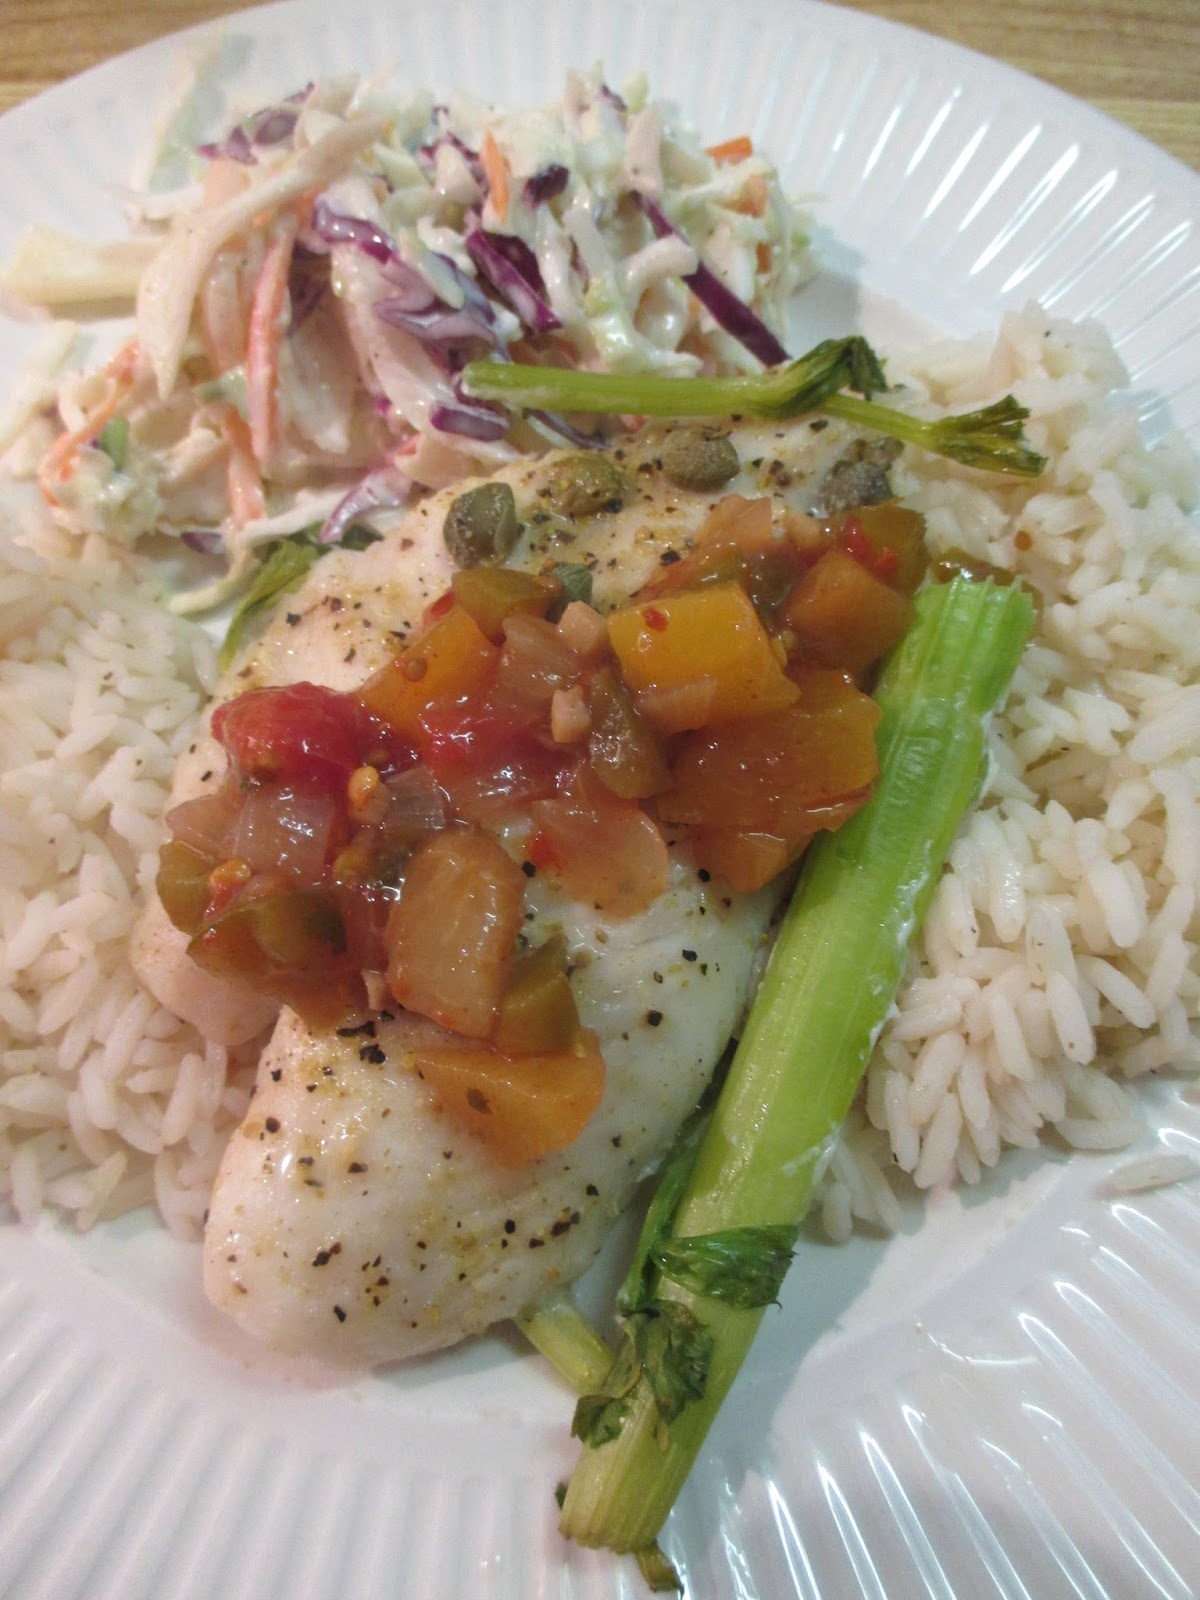 Just my Stuff: Tilapia with Spicy Peach Salsa